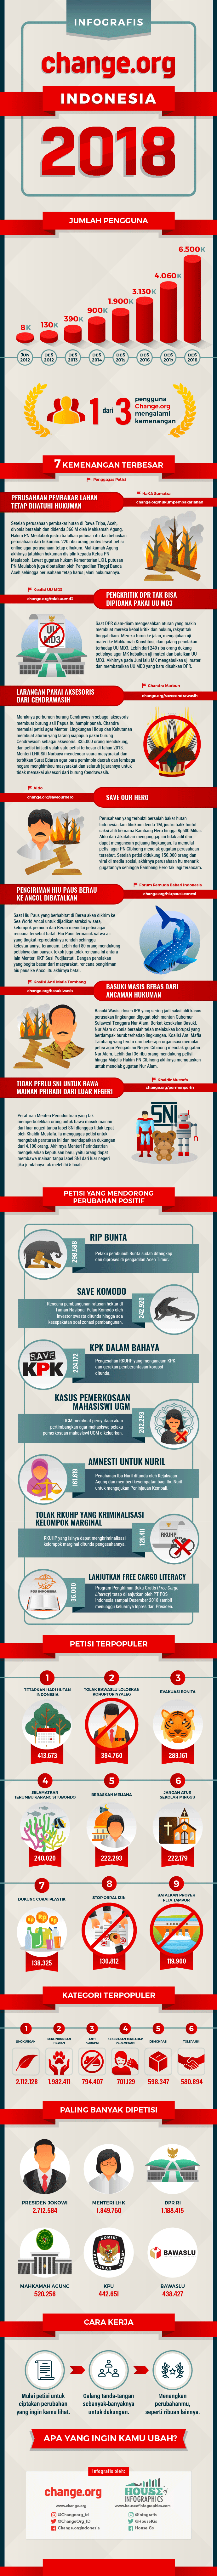 Infografis Change.org 2018 oleh House of Infographics